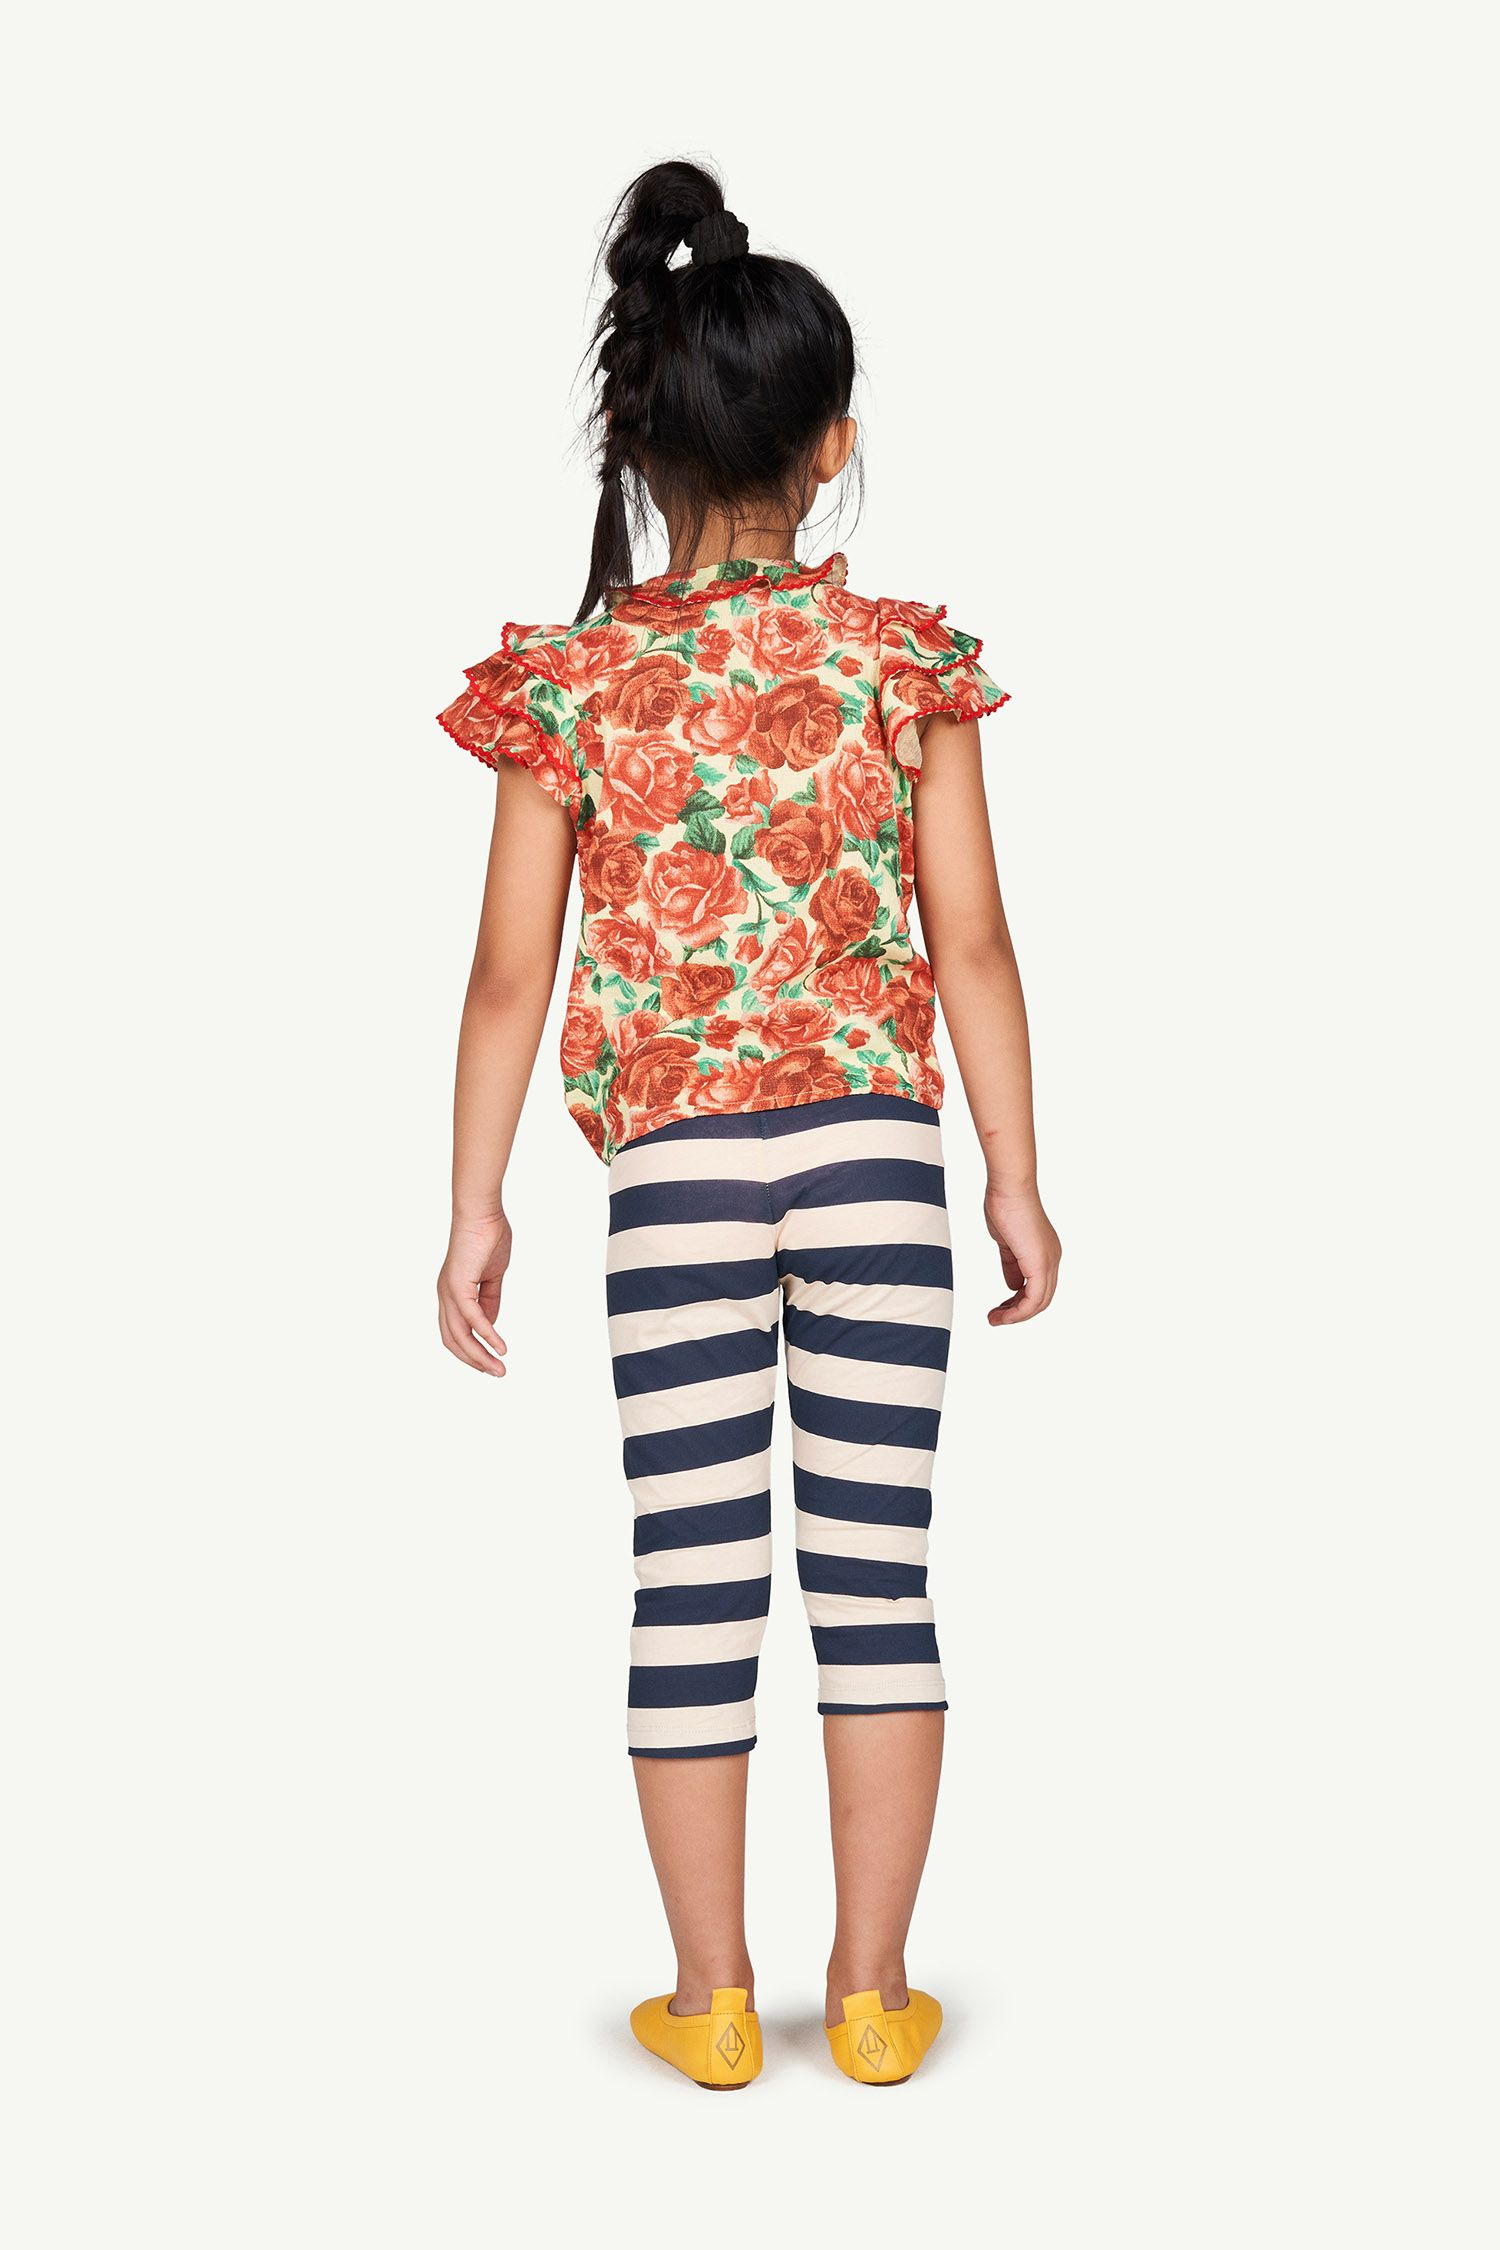 Peachy Stripes Eagle Leggings img-6